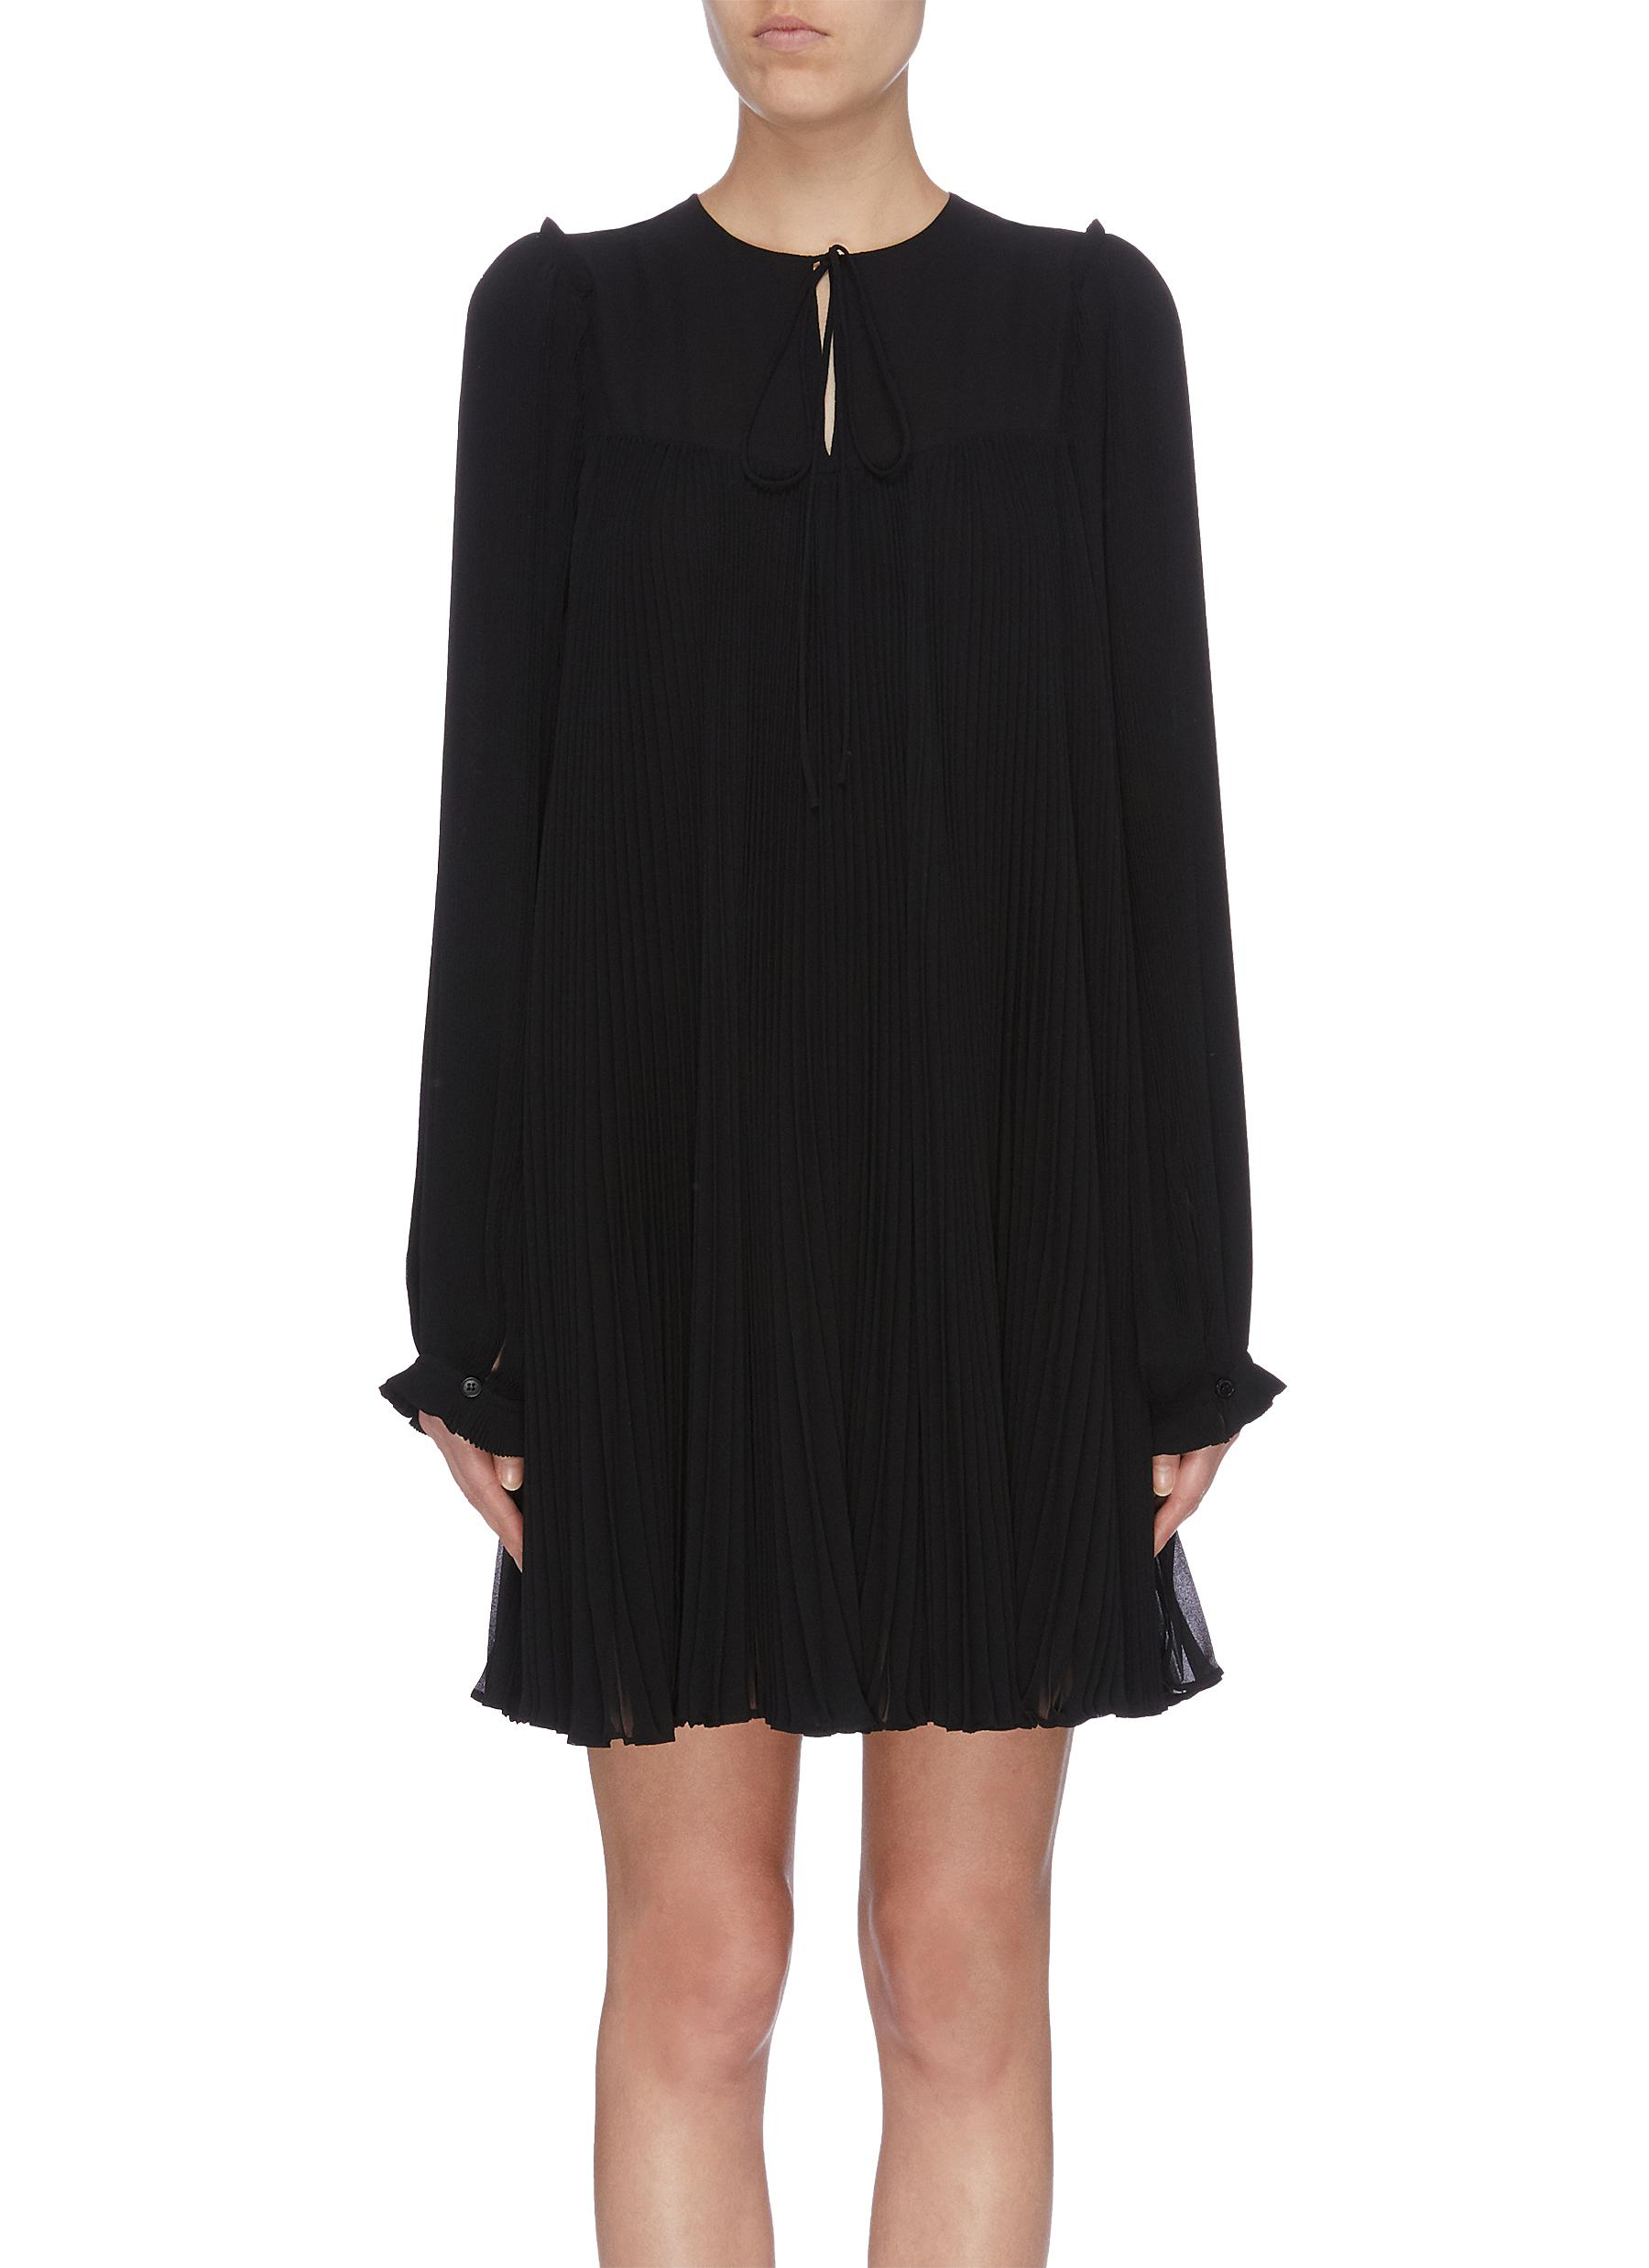 Pleated georgette dress by Stella Mccartney